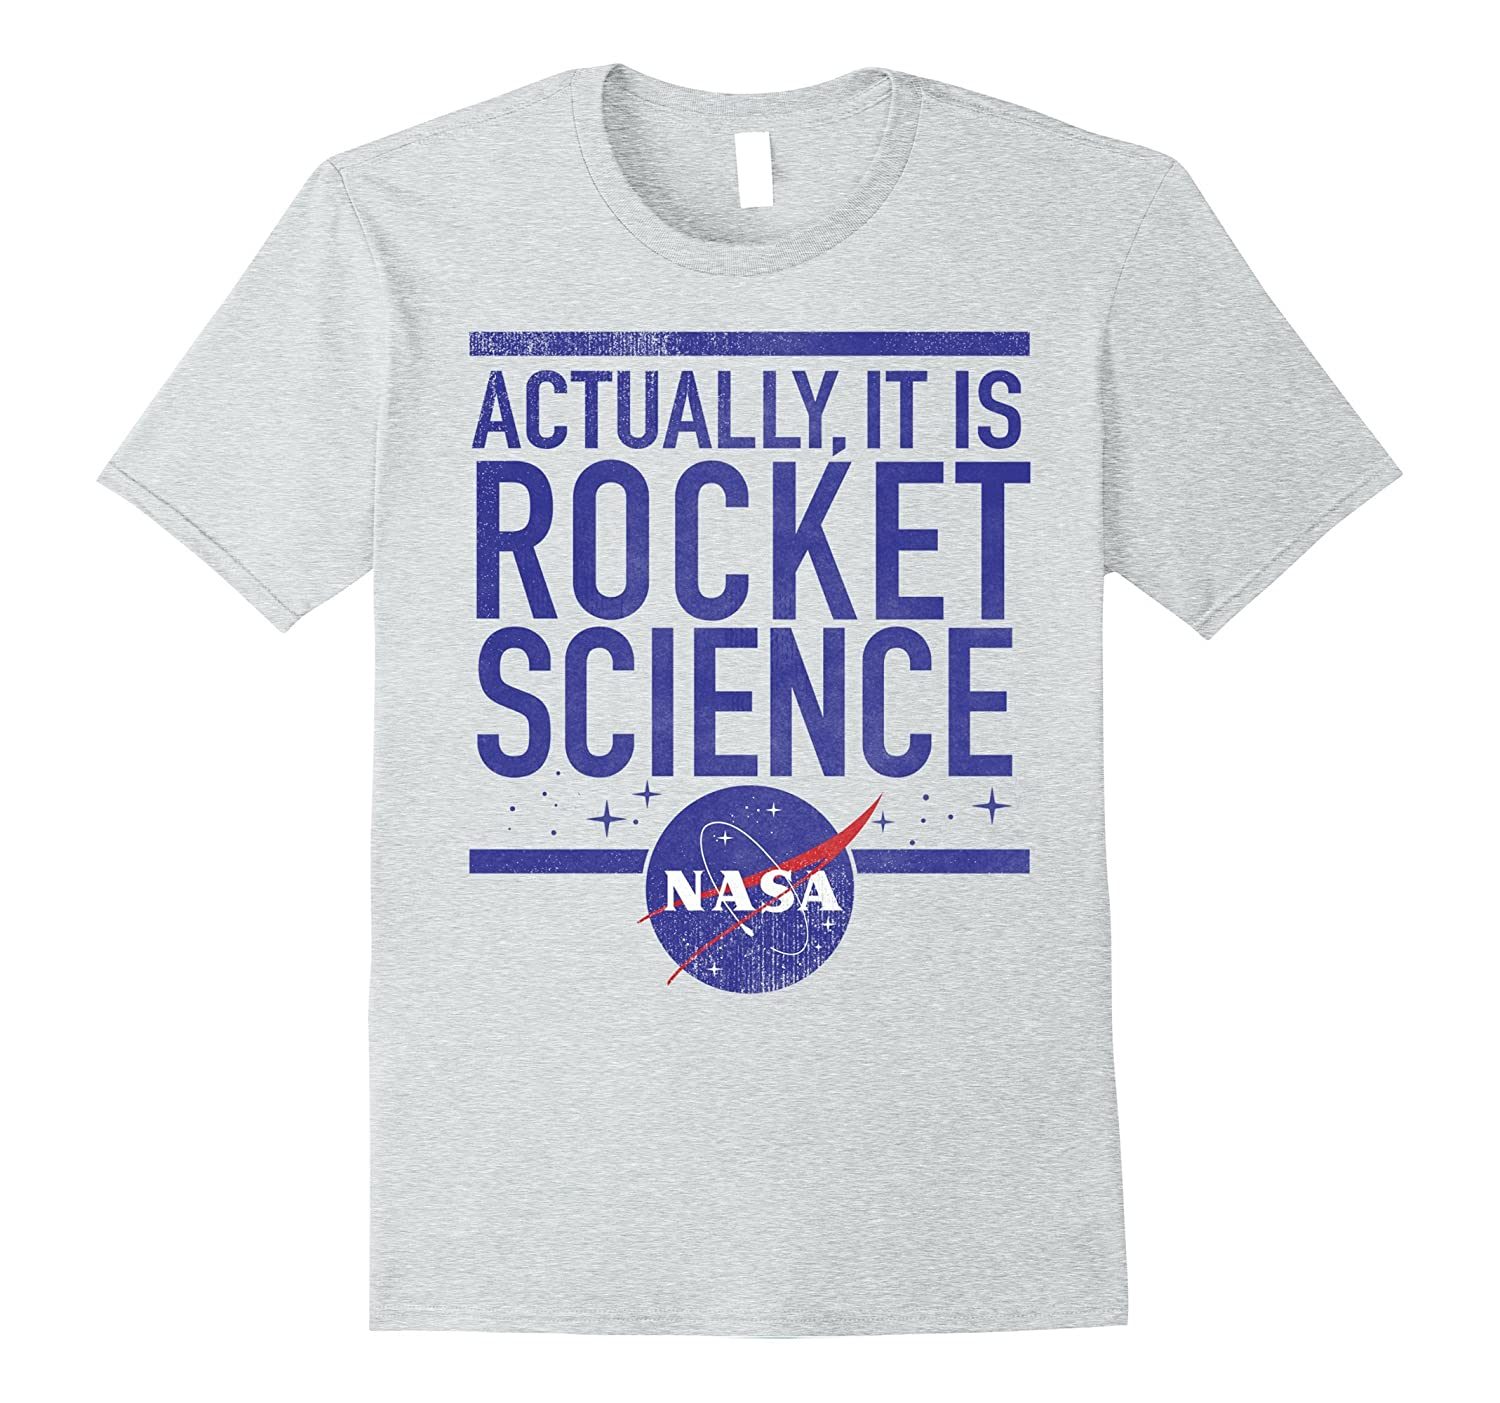 a3999e4fb NASA Actually It Is Rocket Science Graphic T-Shirt-ANZ ⋆ Anztshirt